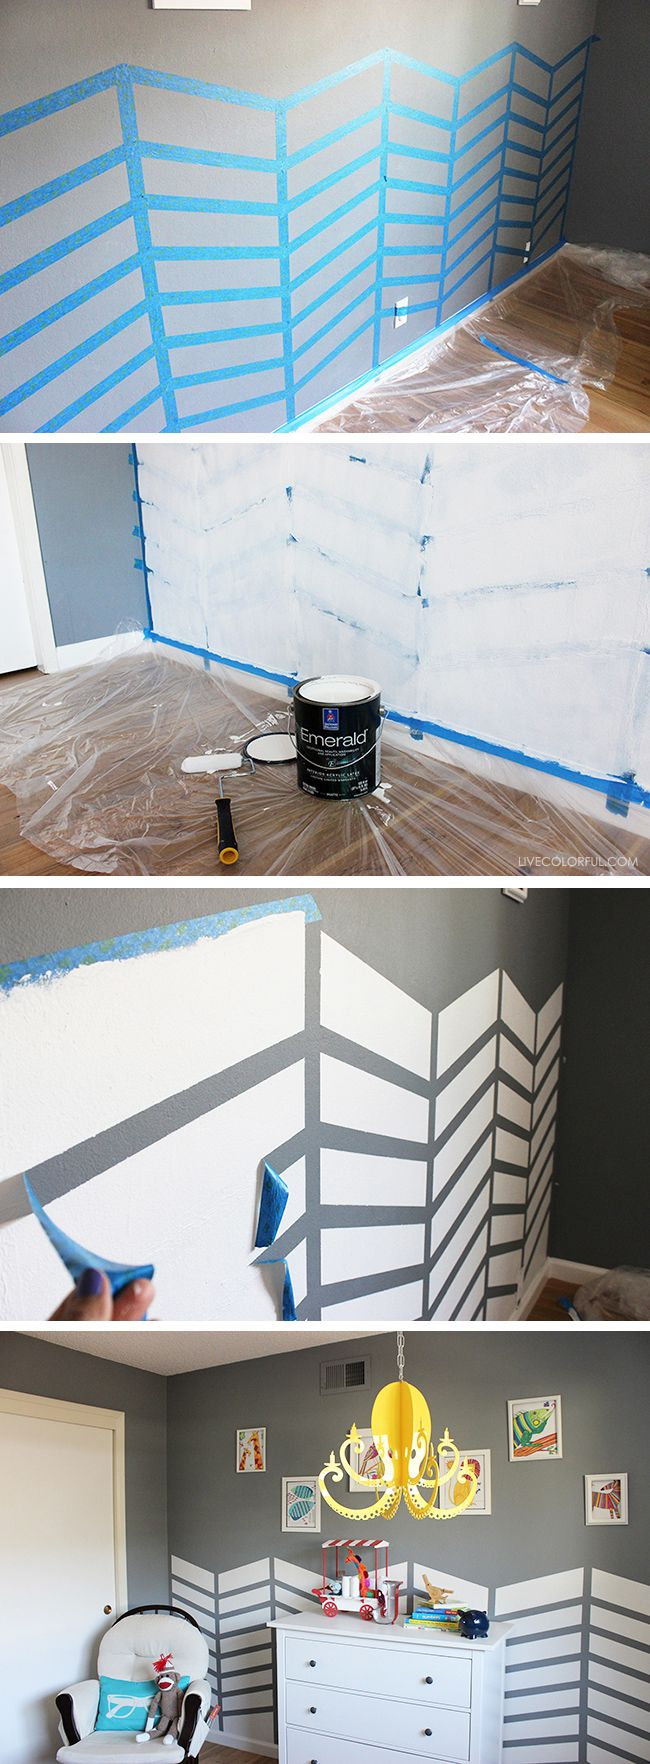 How to paint a fun chevron pattern on your walls | Live Colorful